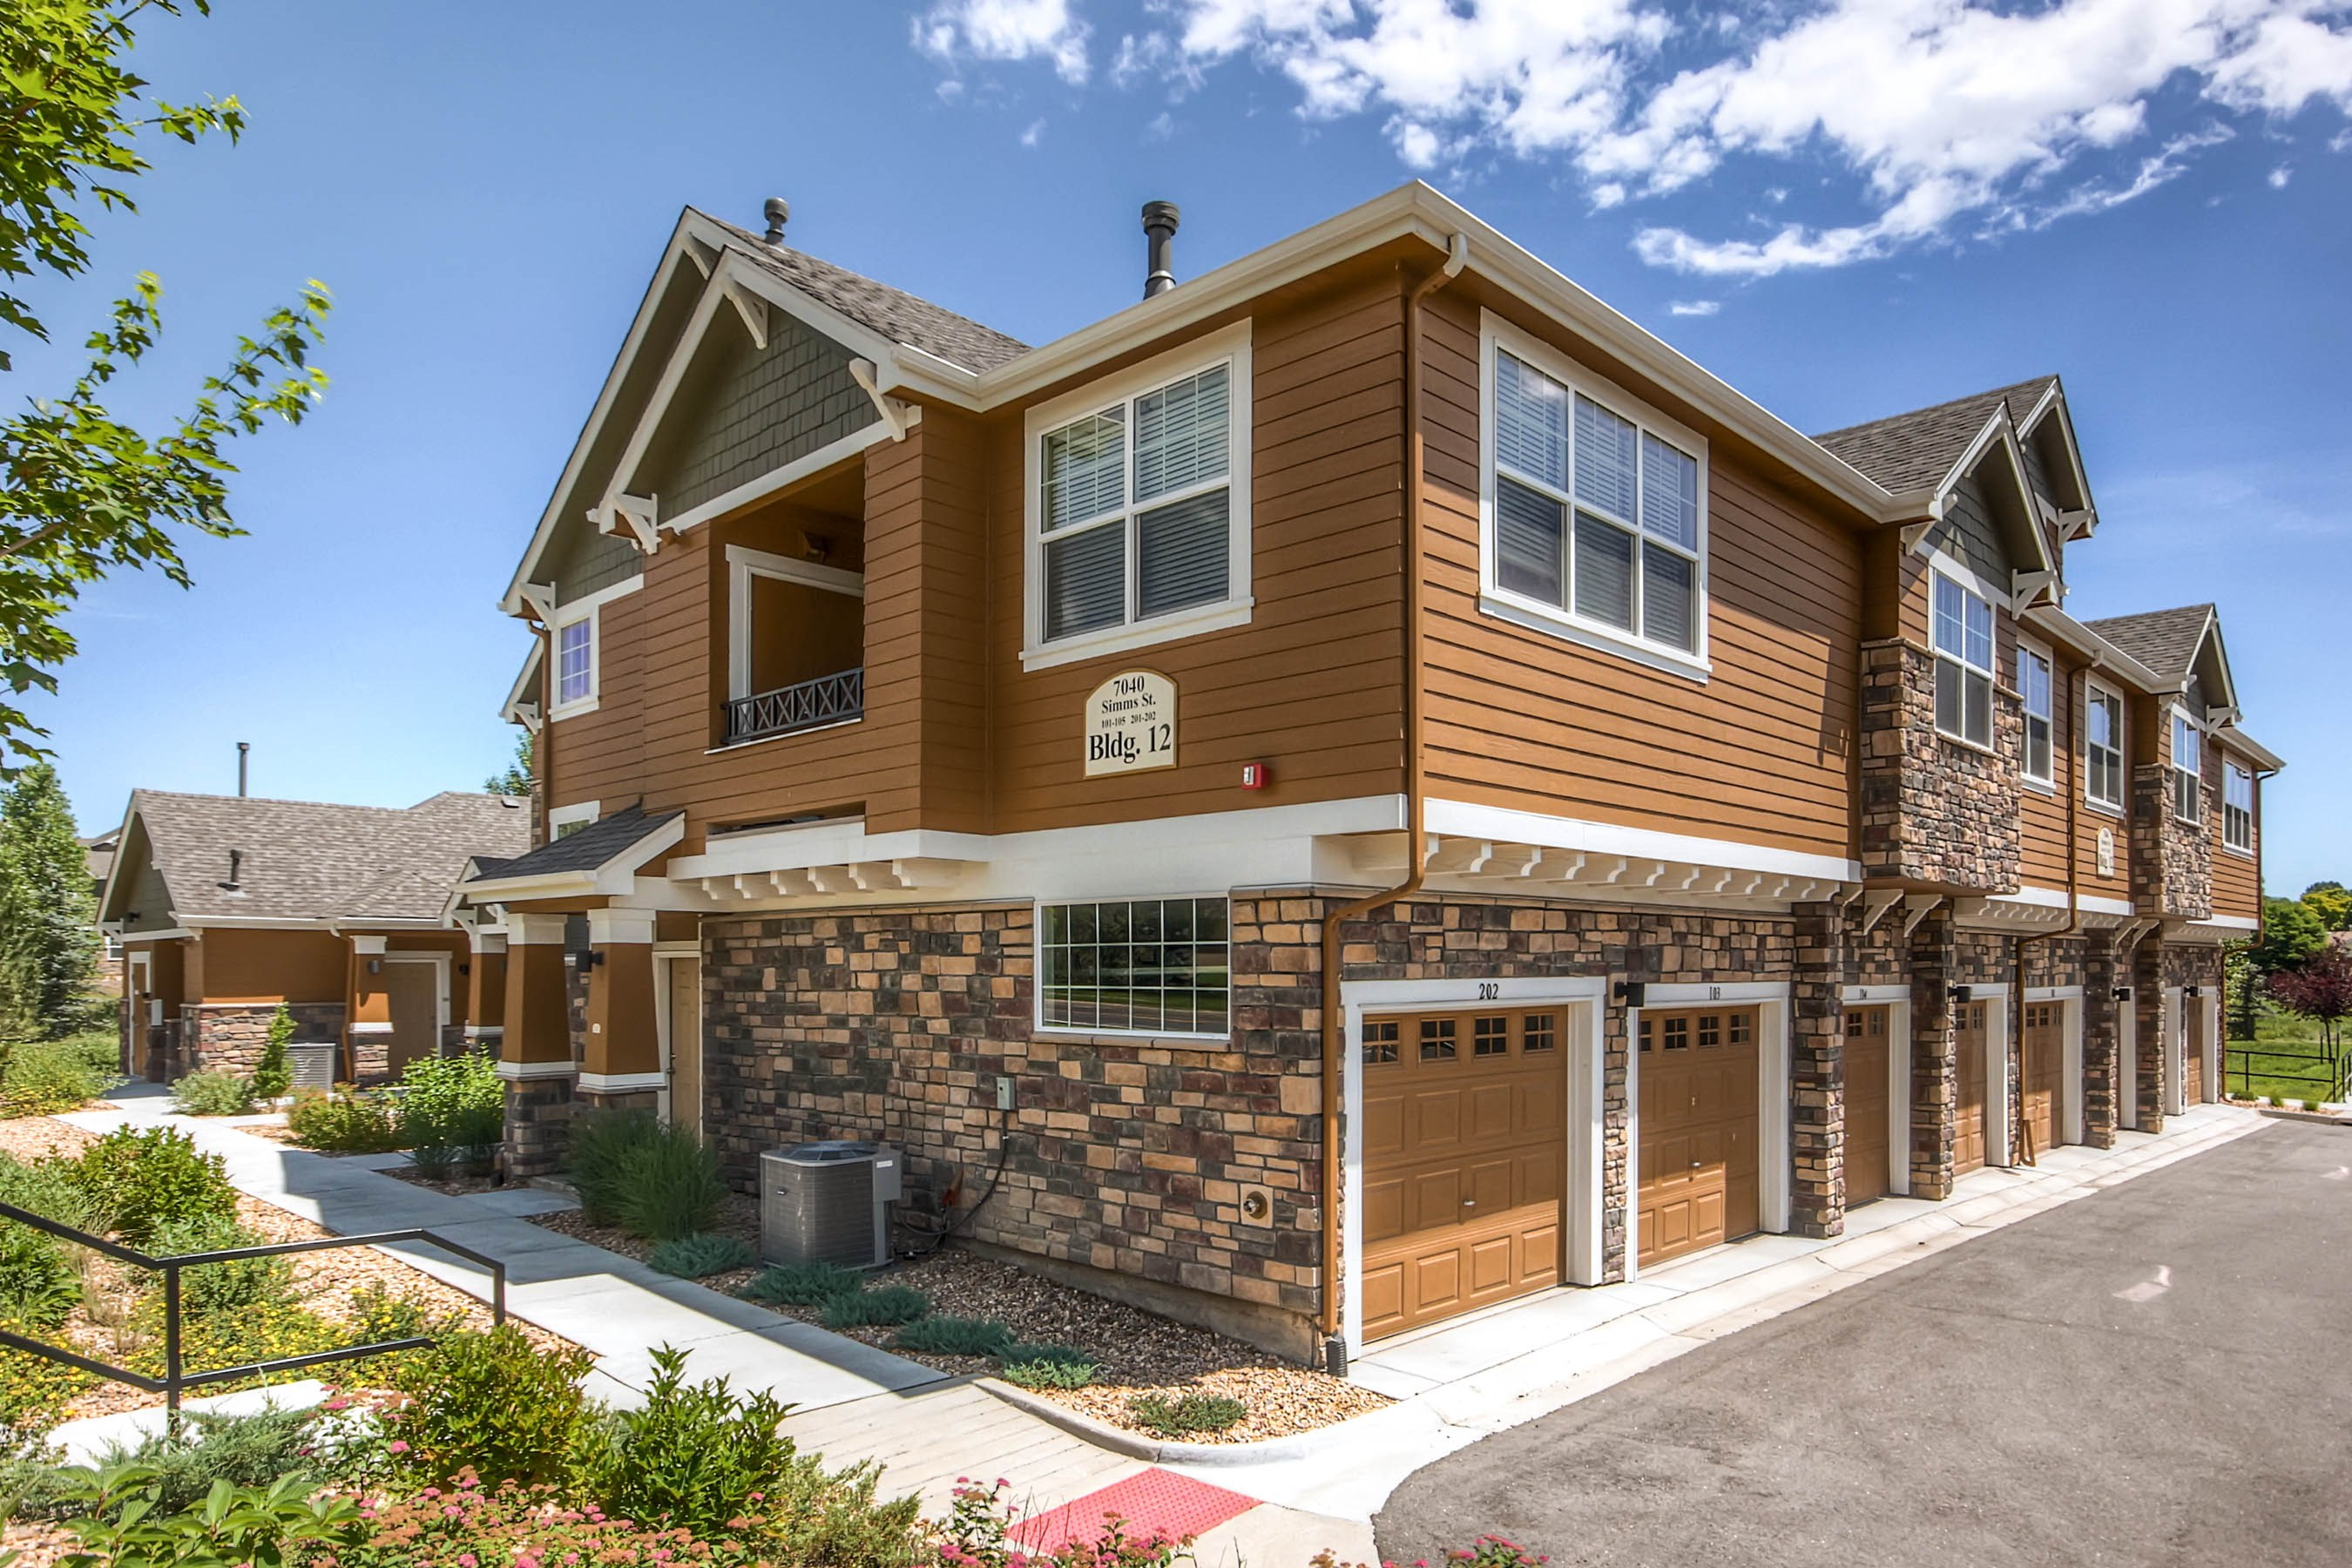 Attached Garages at Maple Leaf Apartments in Arvada, CO